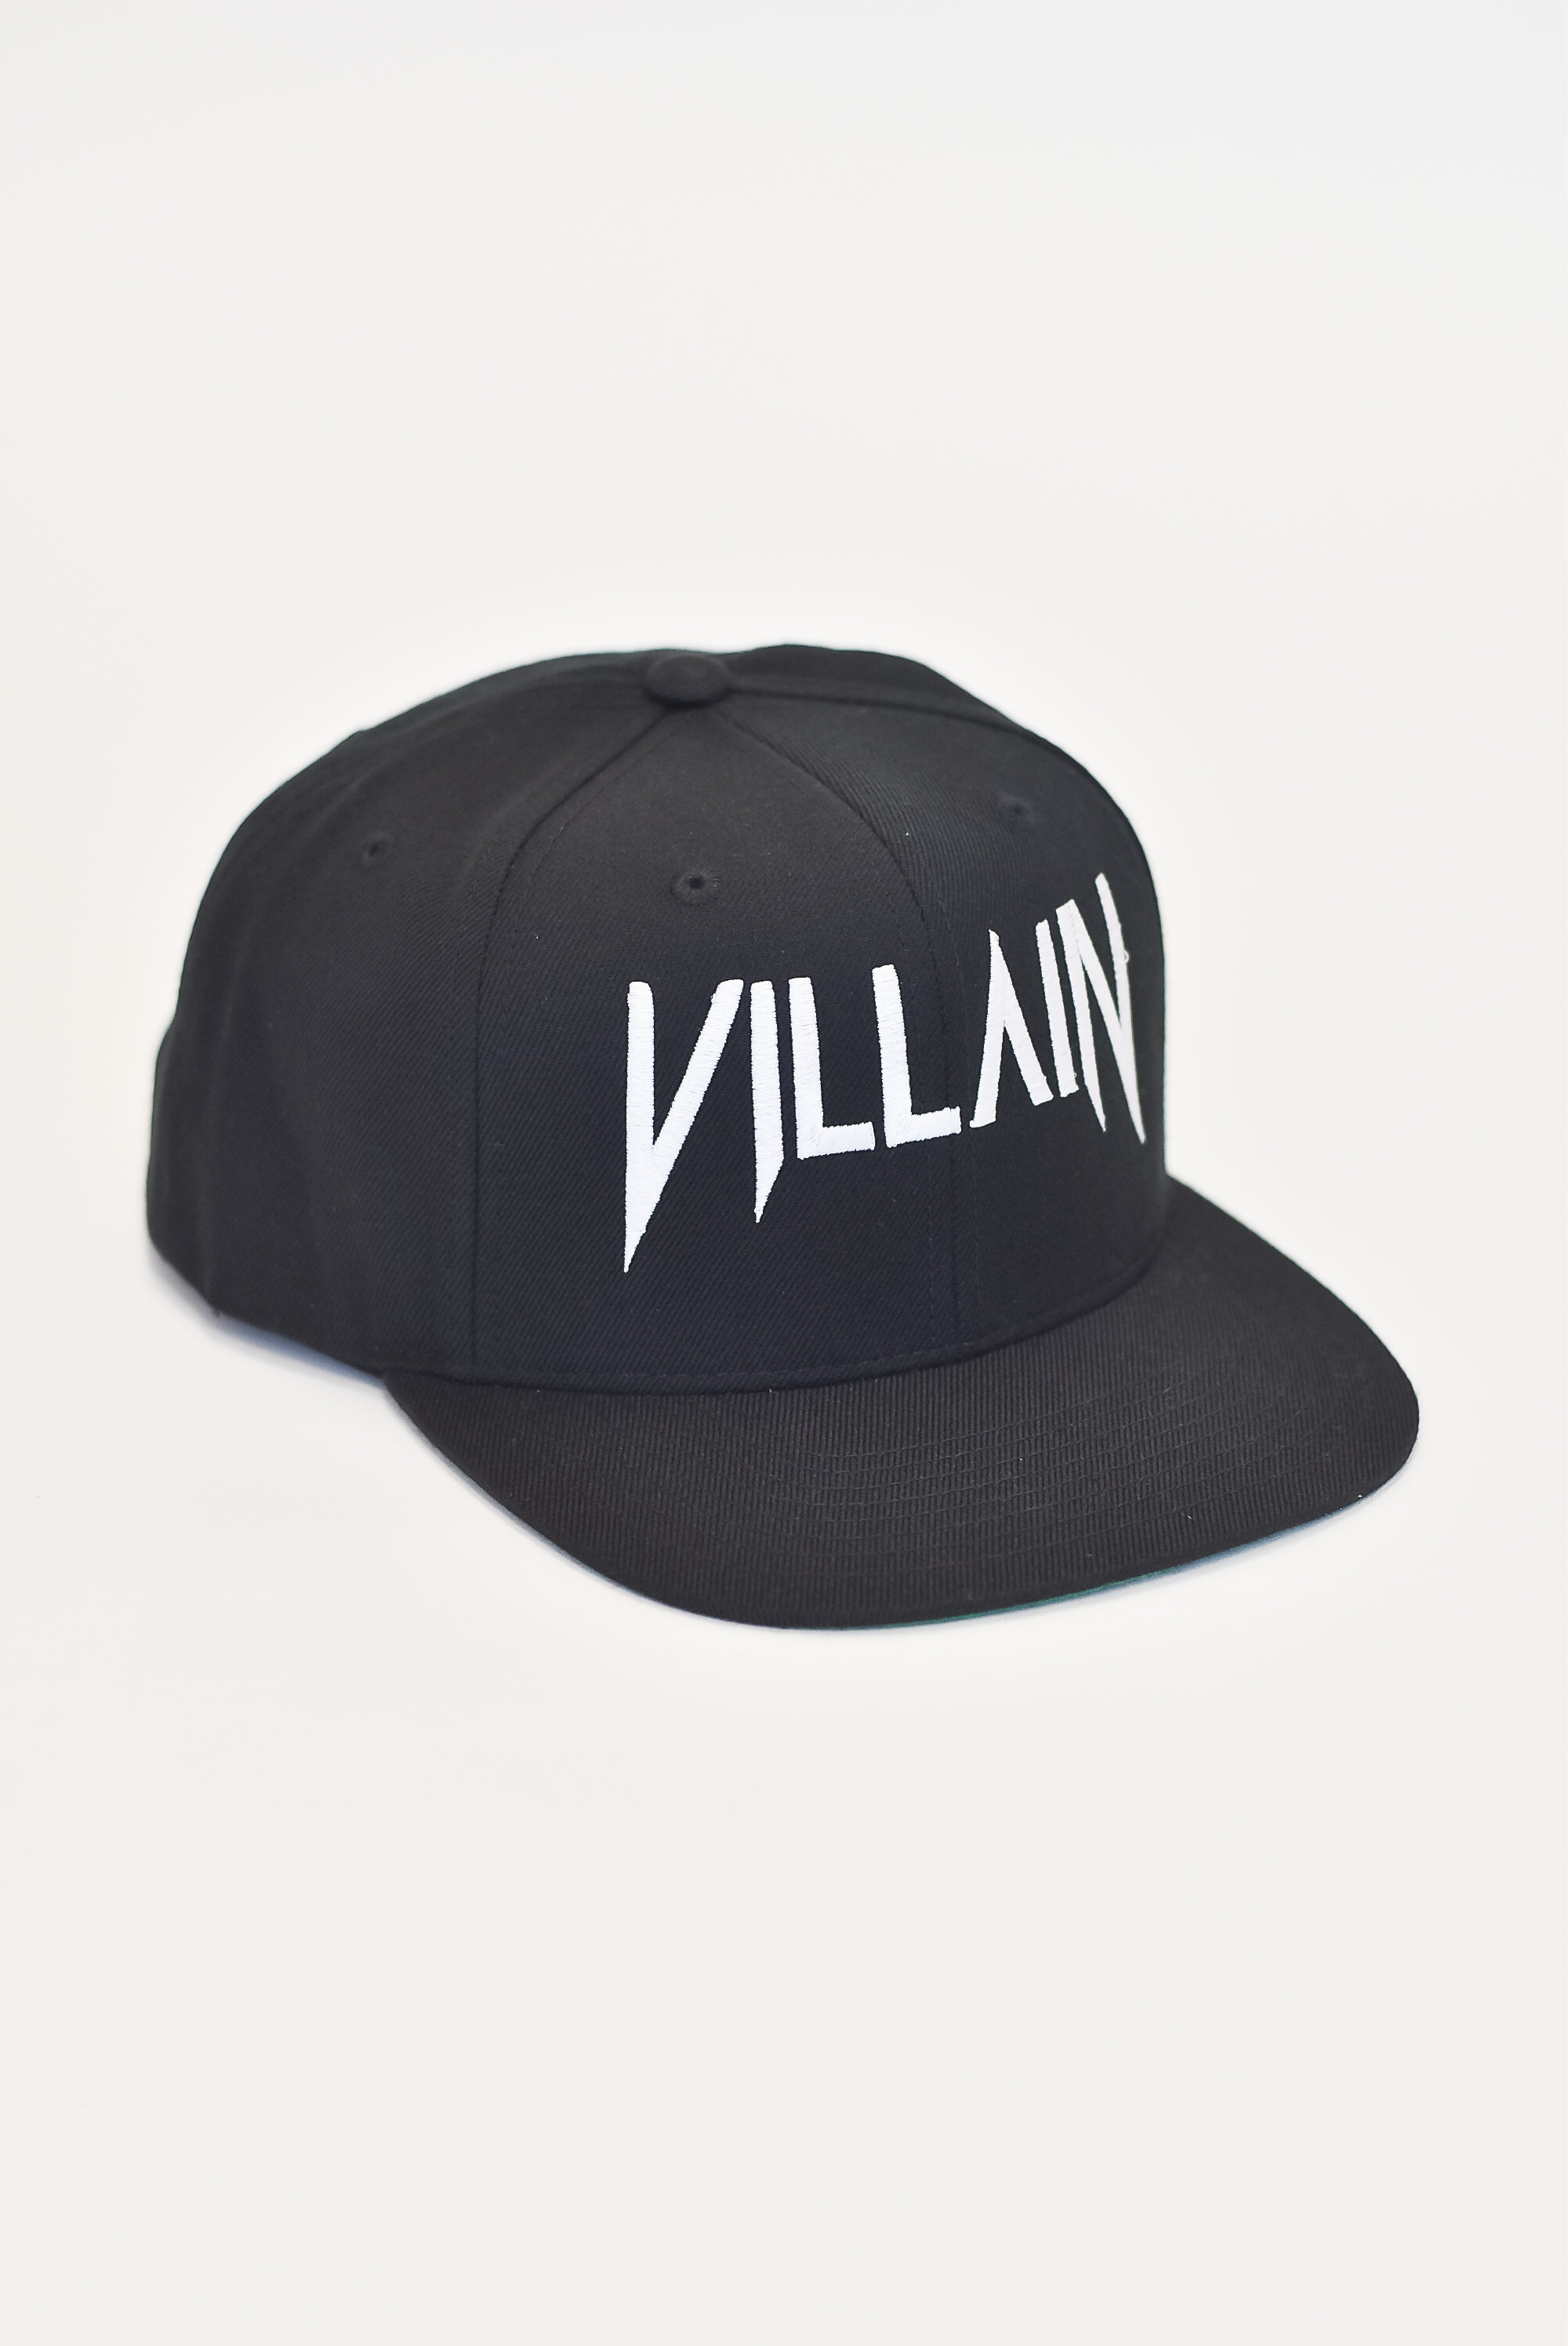 villain clothing vitaly villain clothing company